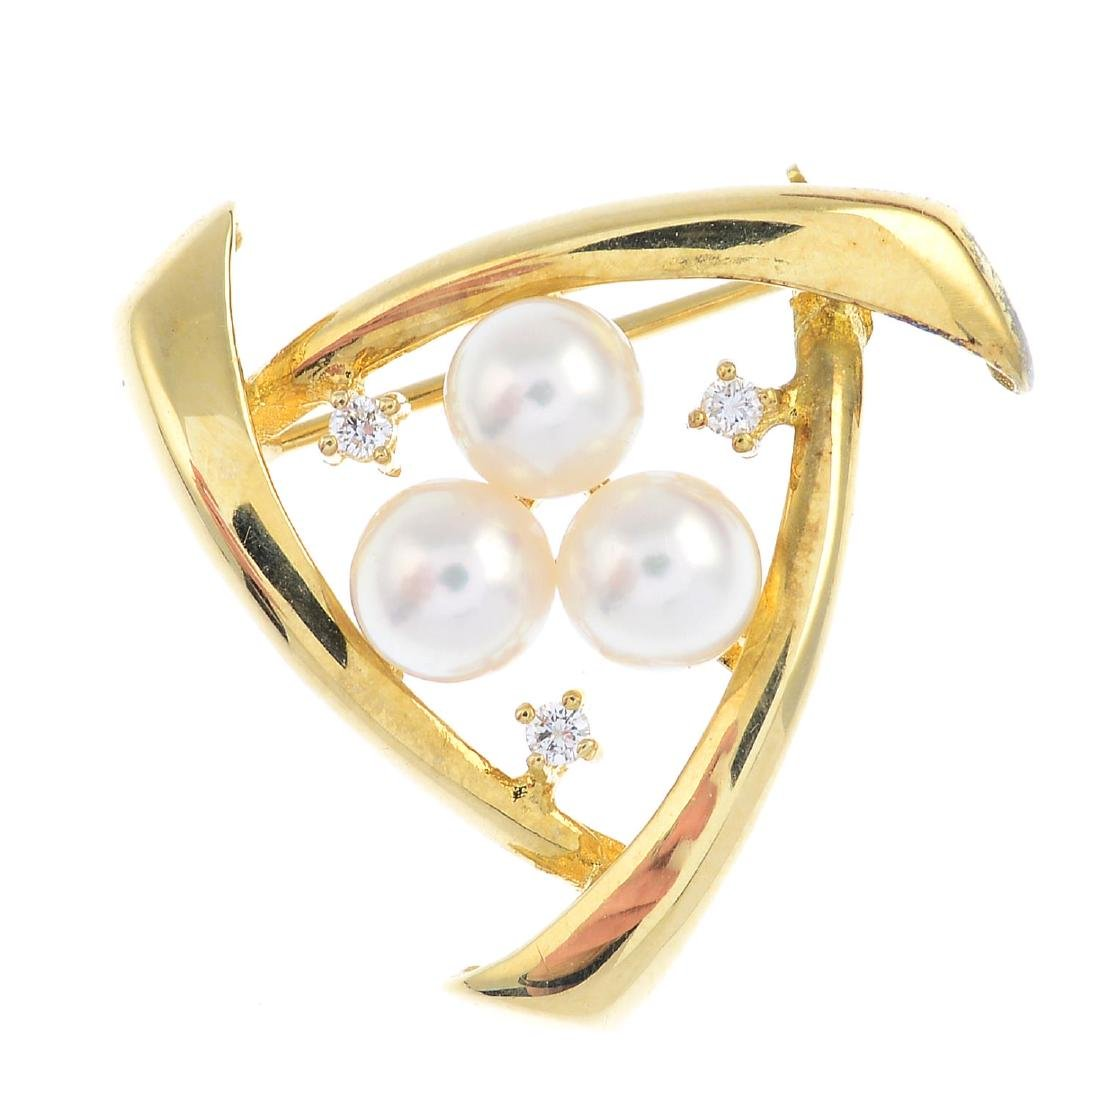 A cultured pearl and diamond brooch. The cultured pearl